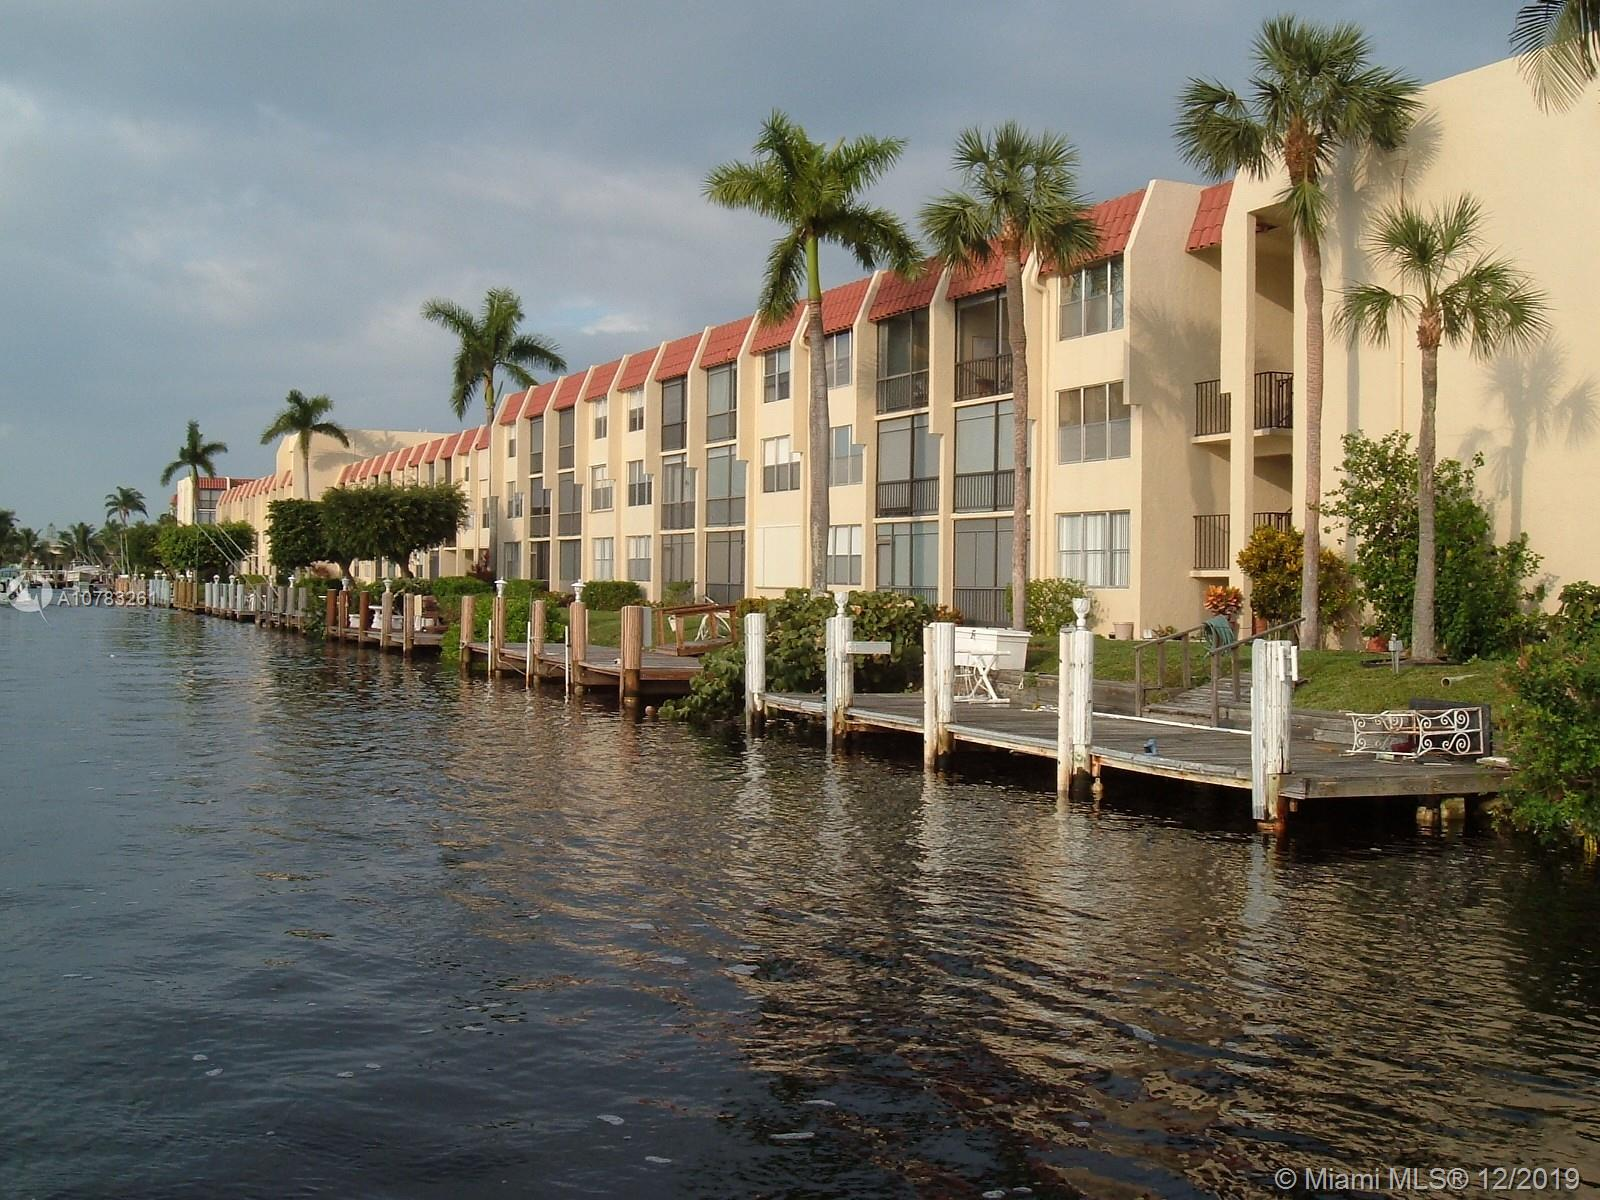 Welcome to the Island Club of Pompano Beach! Watch the constant boat parade pass by. This two bedroom two bathroom furnished condo will be sure to please. Community boasts amenities such as 24 hour manned security, courtesy bus, function hall, billiard room, card room, tiki huts, hot tub, sauna, etc. Complex is close to the newly redesigned  Pompano Beach fishing pier area, dining, beaches, and Greg Norman designed golf course.